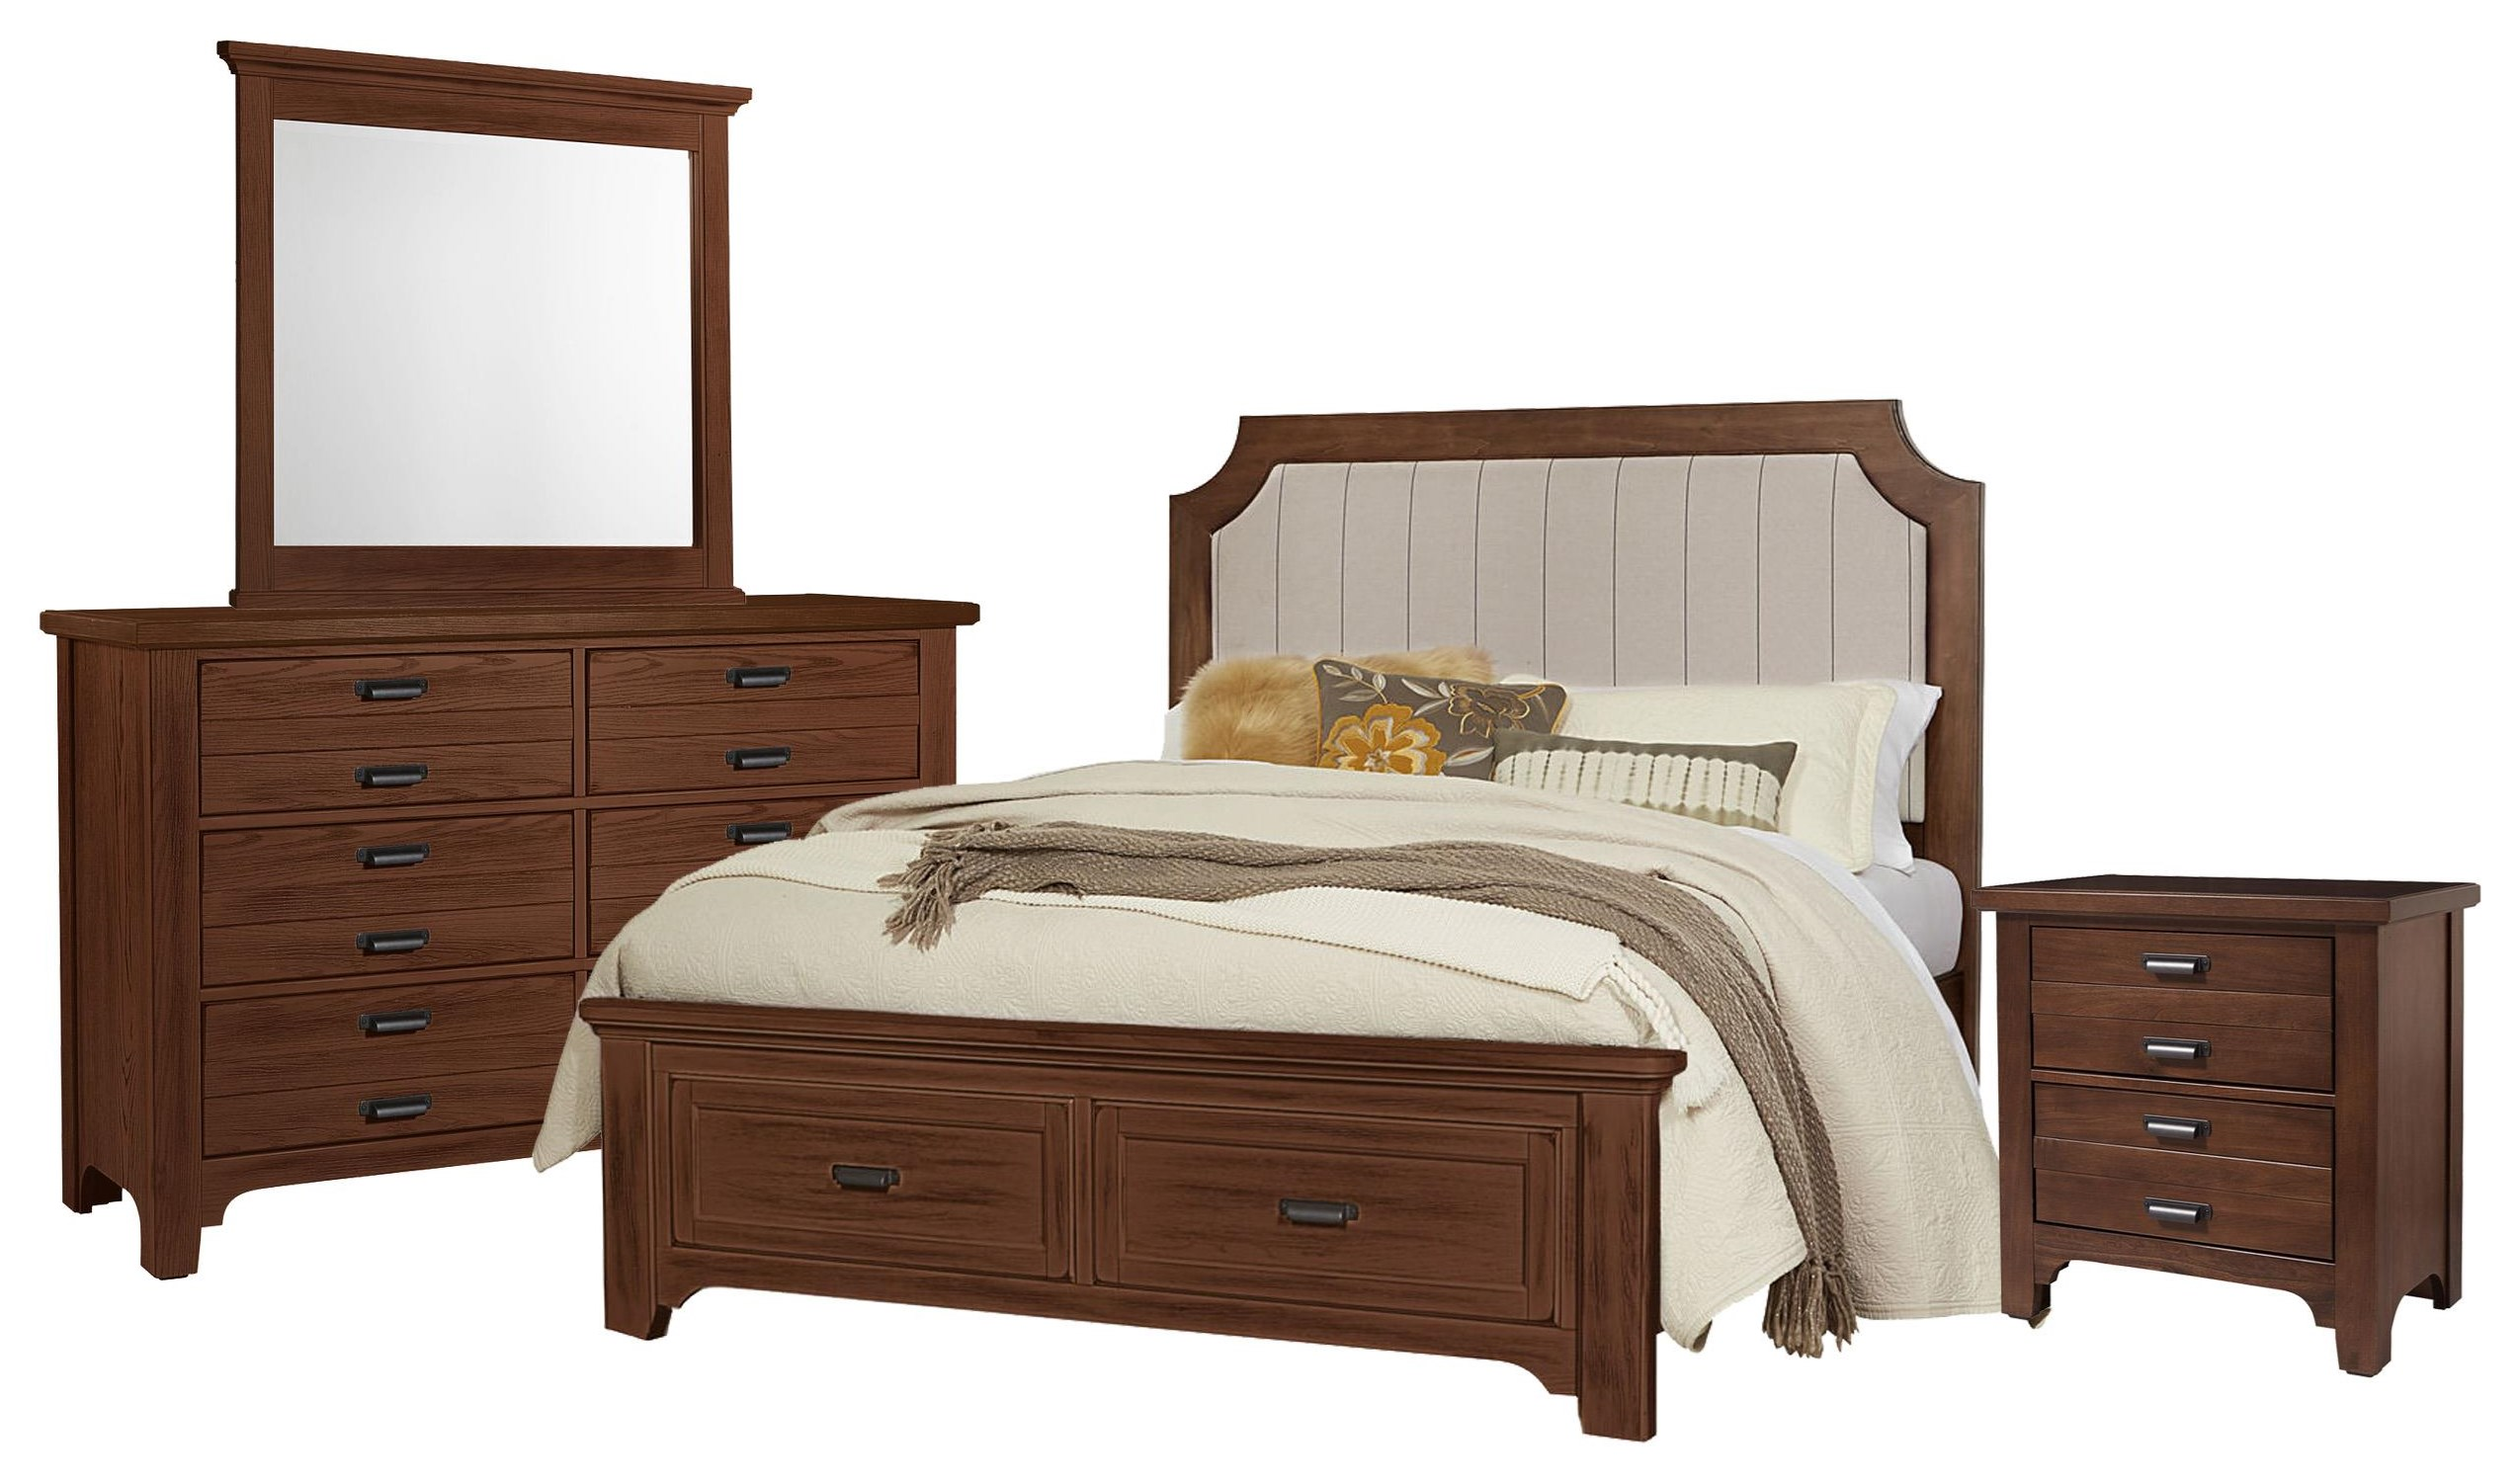 Queen Bed, Dresser, Mirror, Nightstand